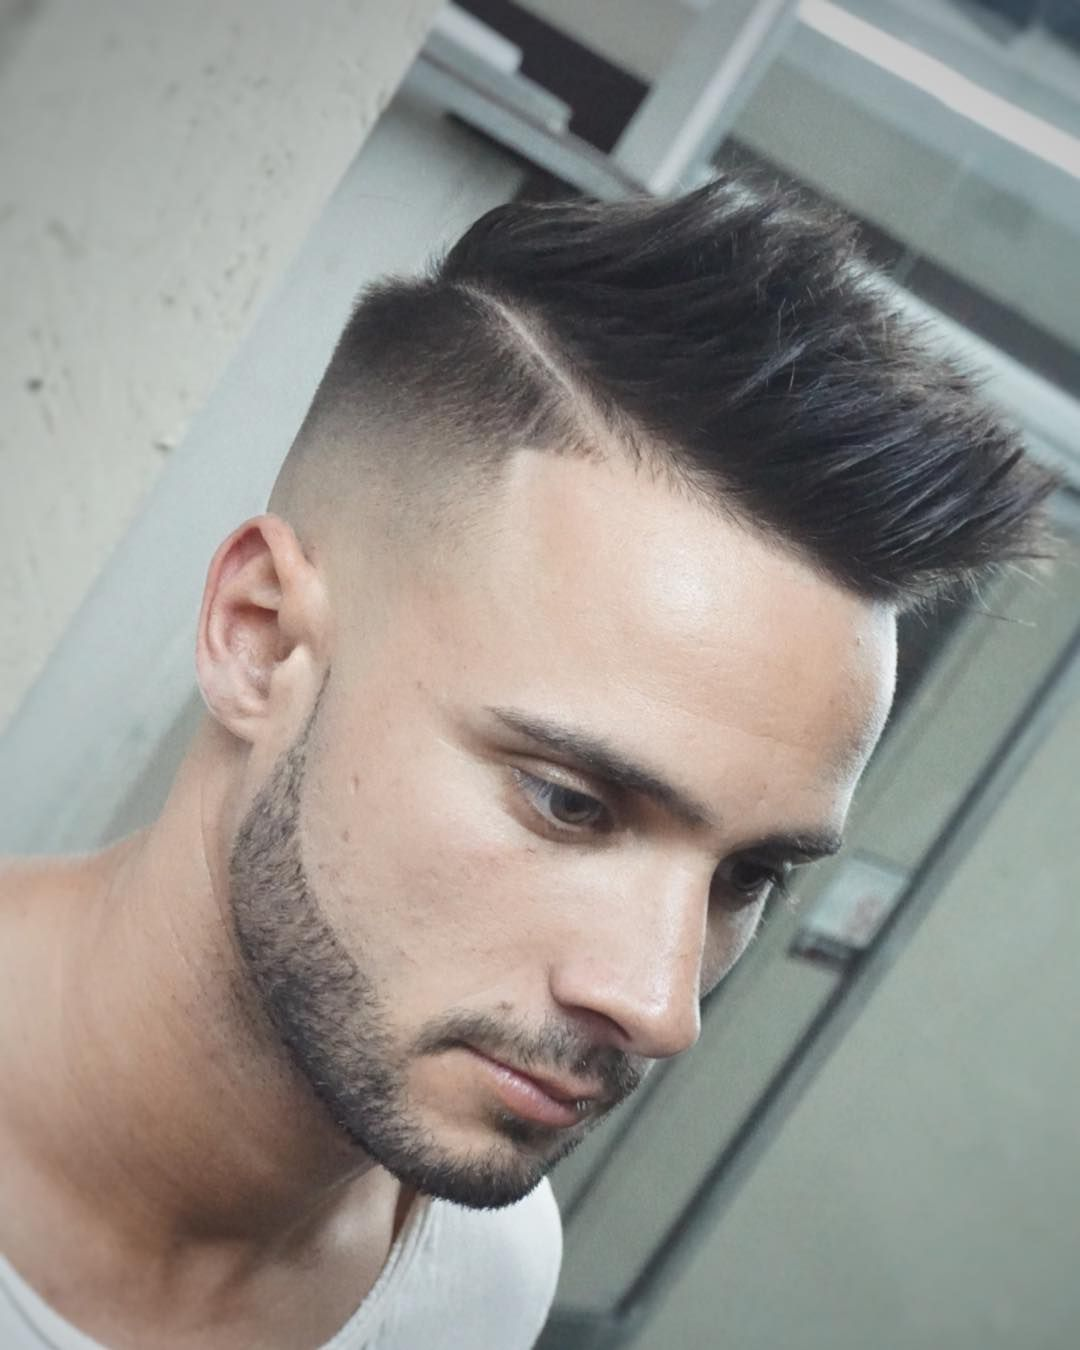 Different Types Of Haircut For Men Haircut Names Men S Hairstyles Haircut Names For Men Haircuts For Men Mens Hairstyles